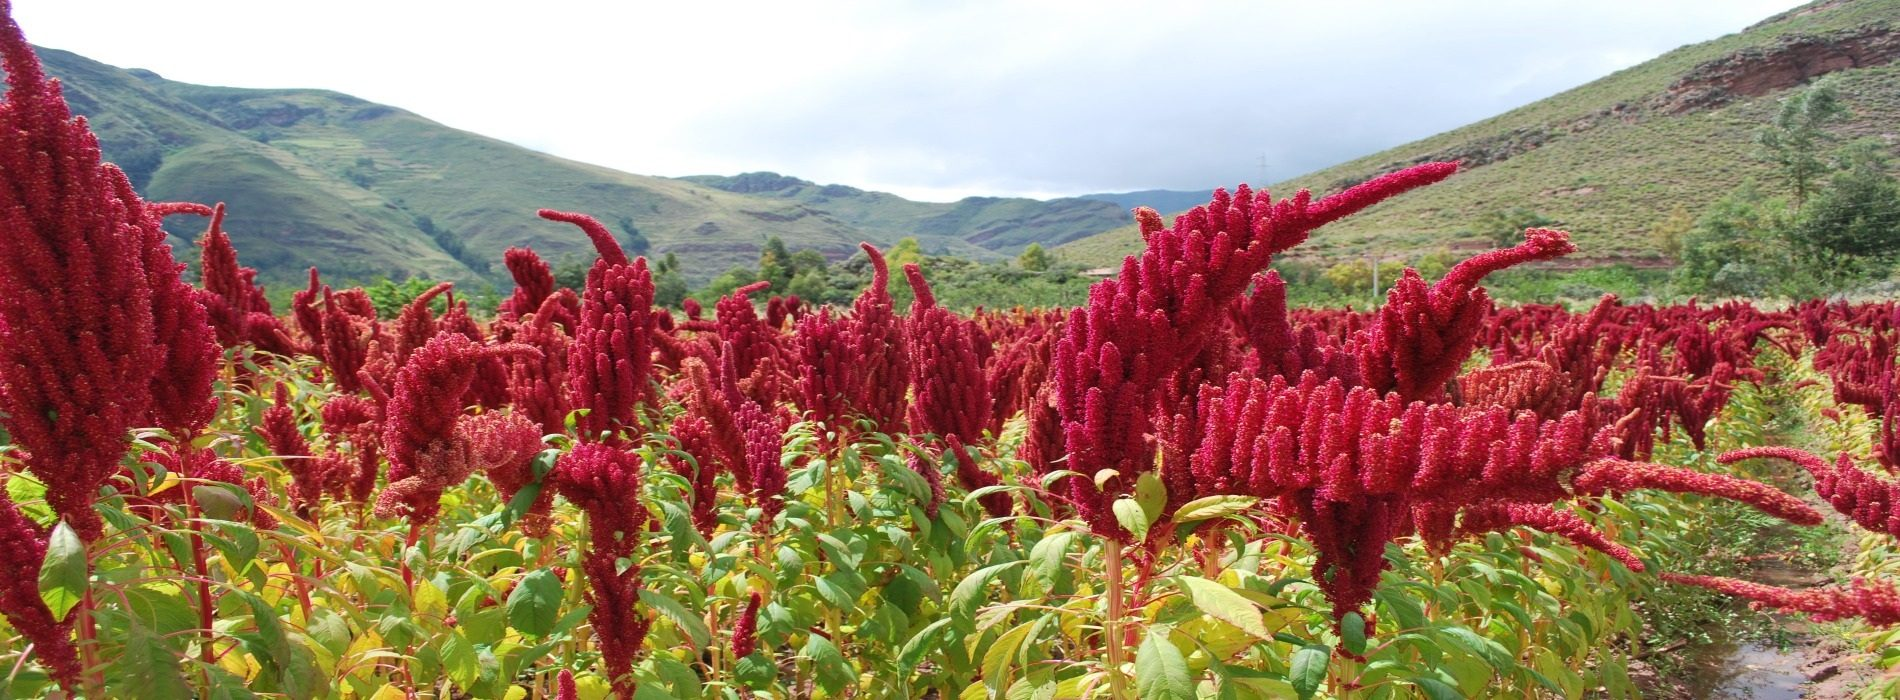 Quinoa Scheme an opportunity for diversification, says Amatheon Zambia